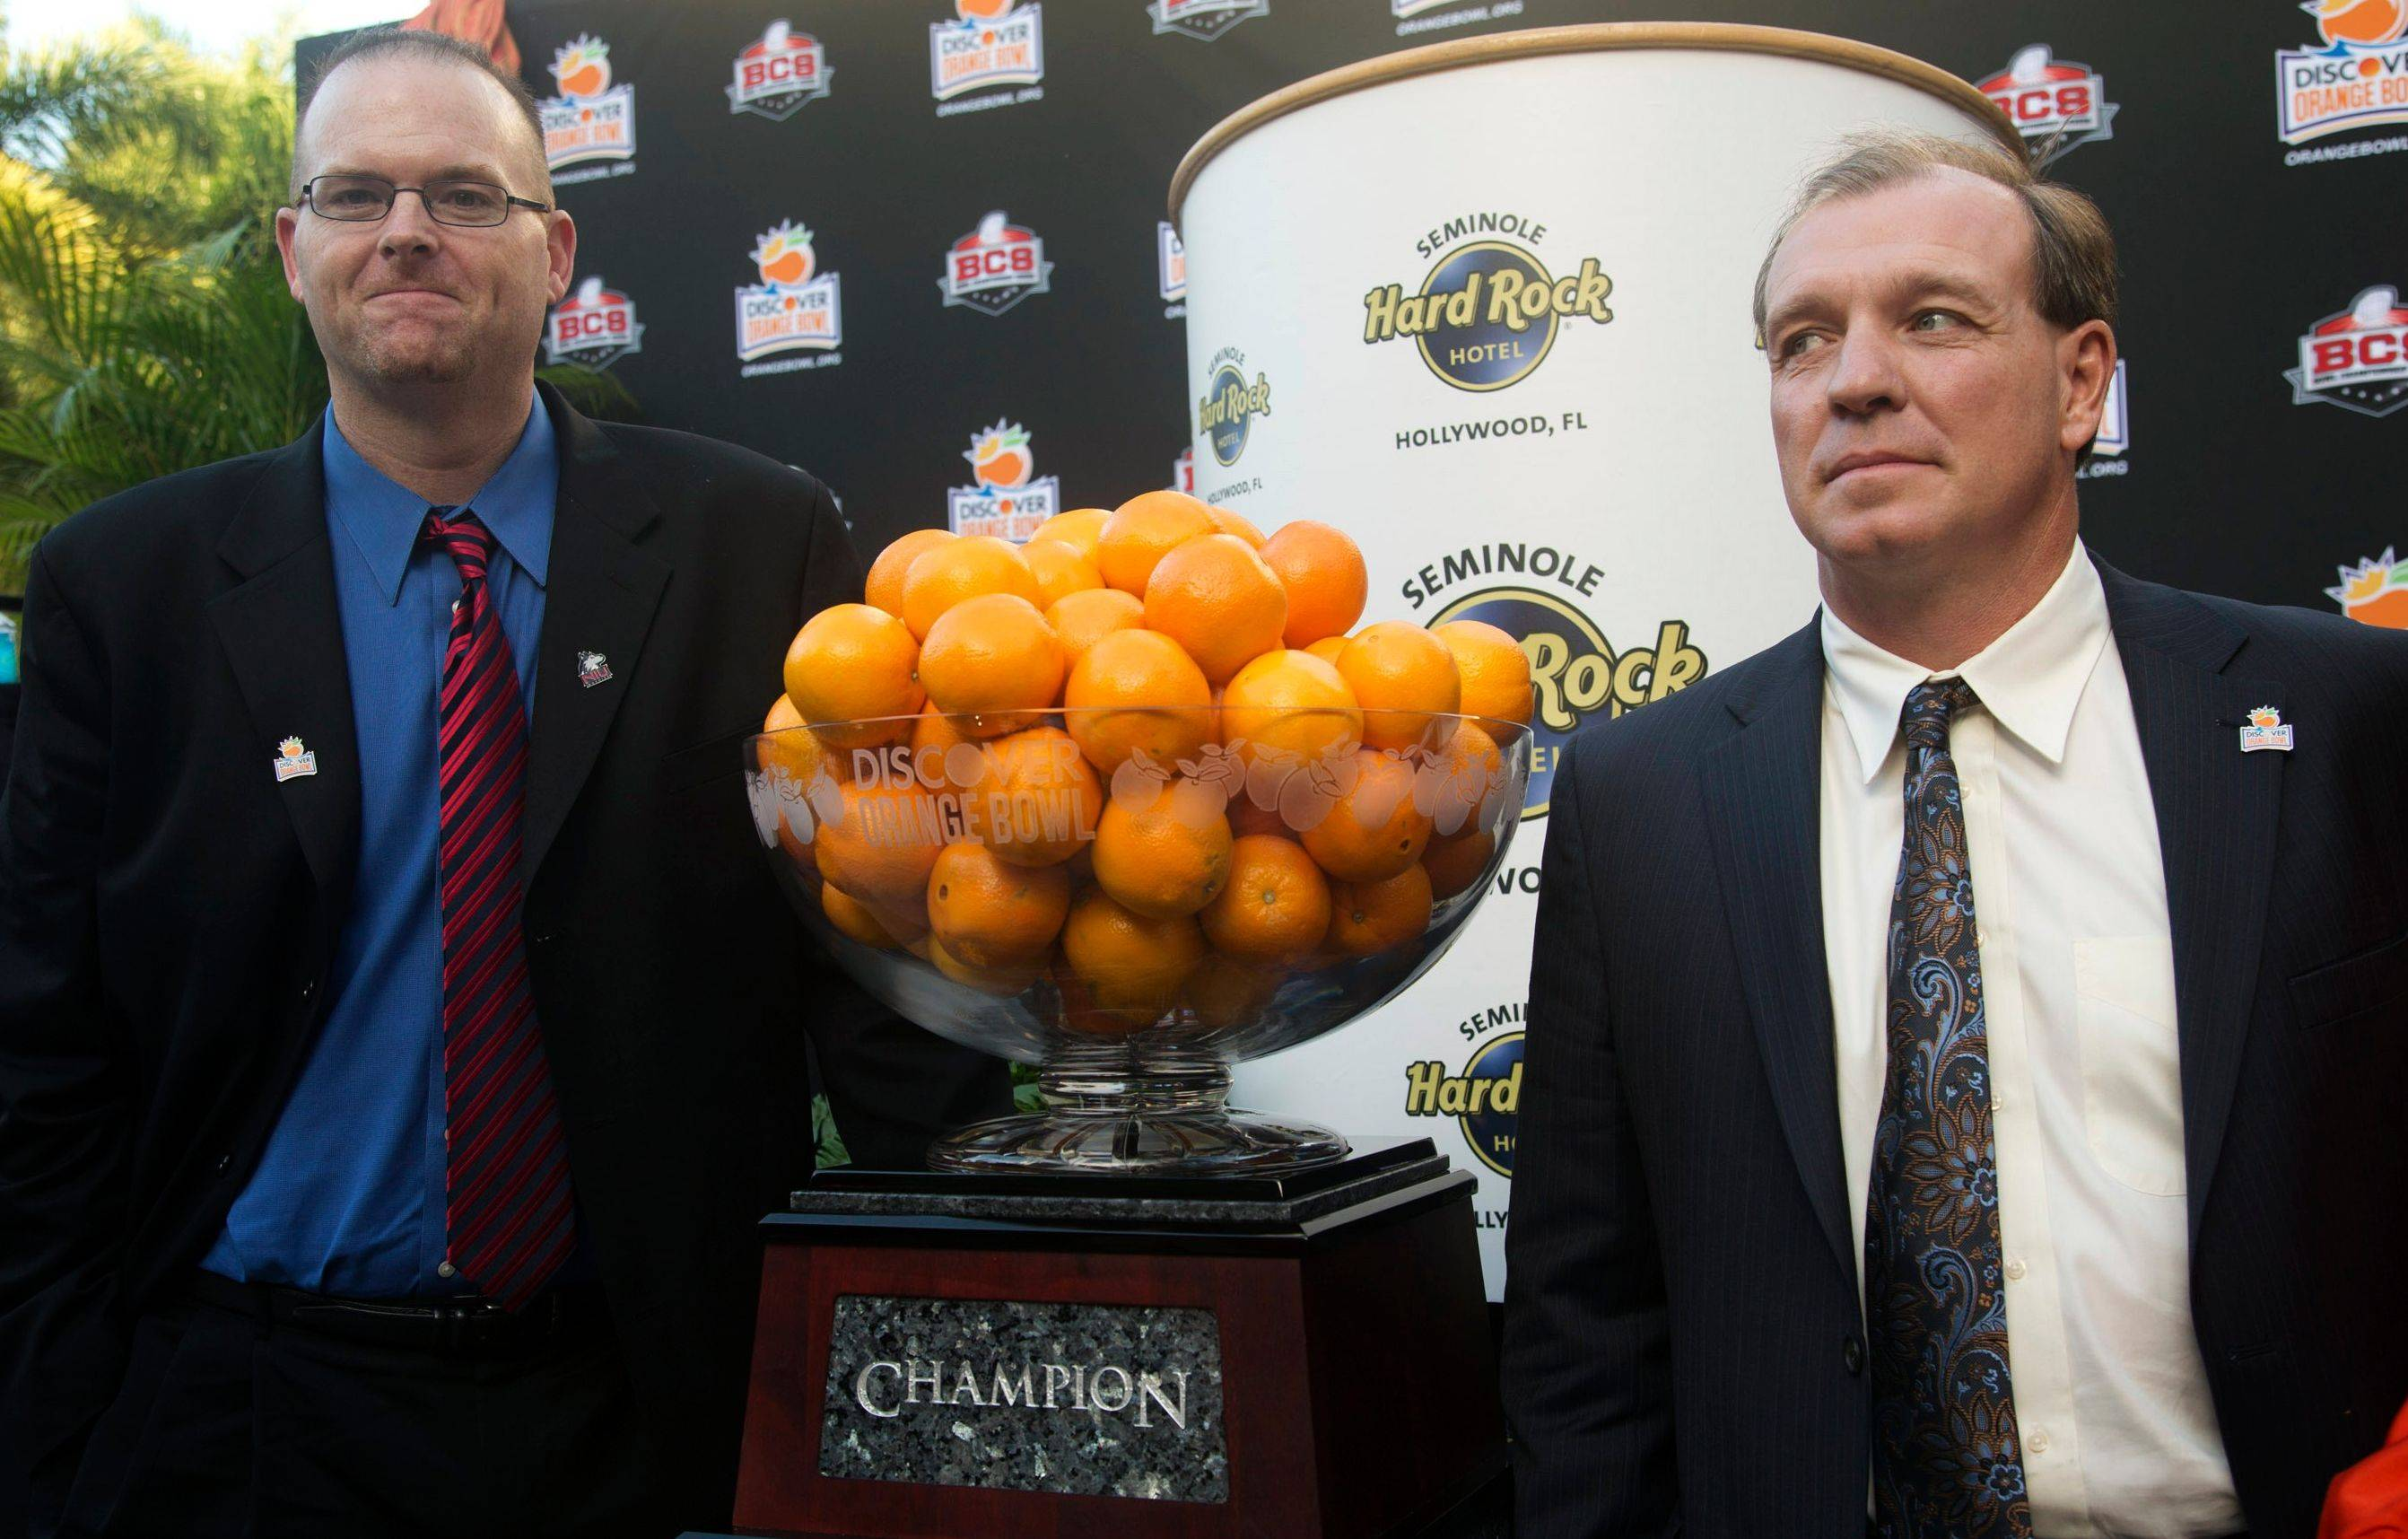 Northern Illinois' head coach Rod Carey, left, and Florida State head coach Jimbo Fisher pose for photos after a news conference promoting the Orange Bowl.